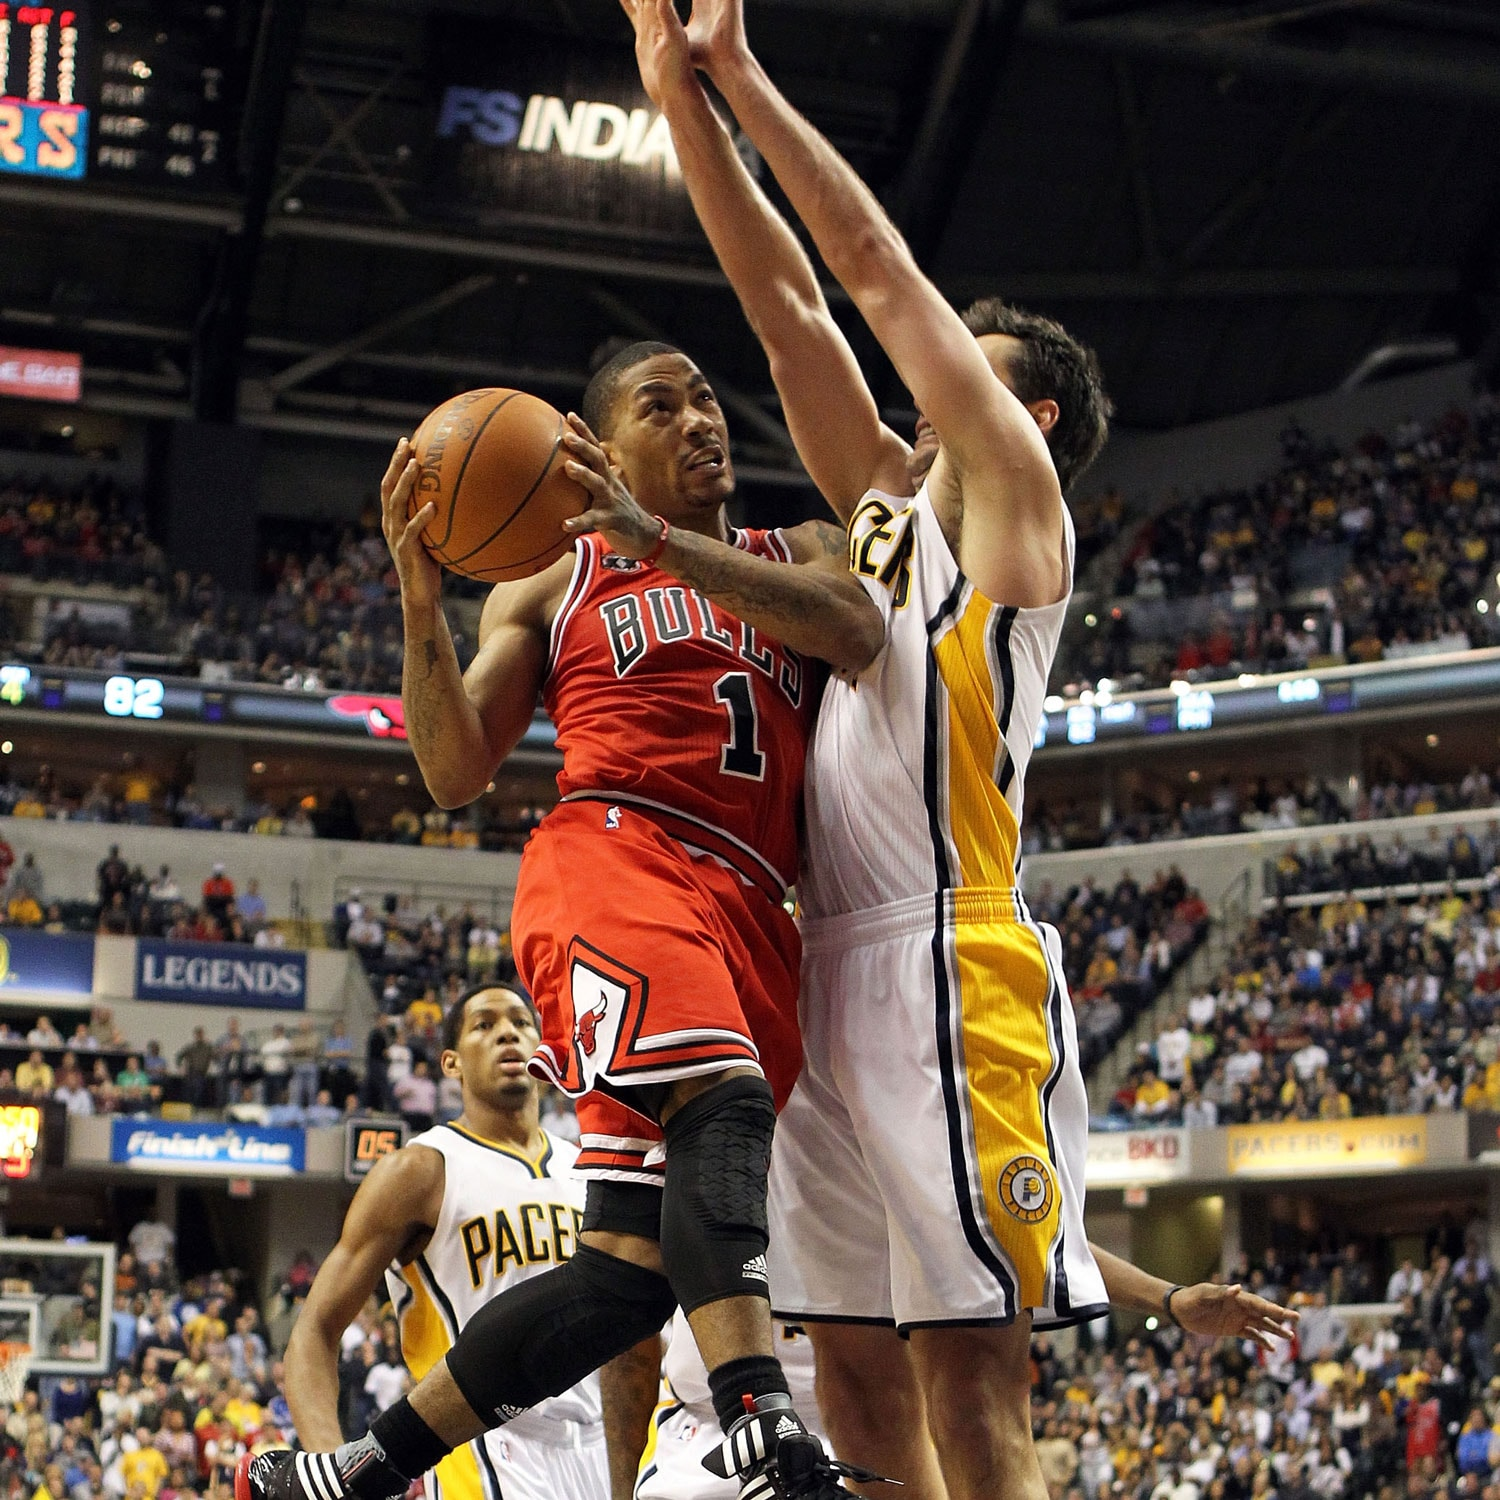 Derrick Rose against the Pacers